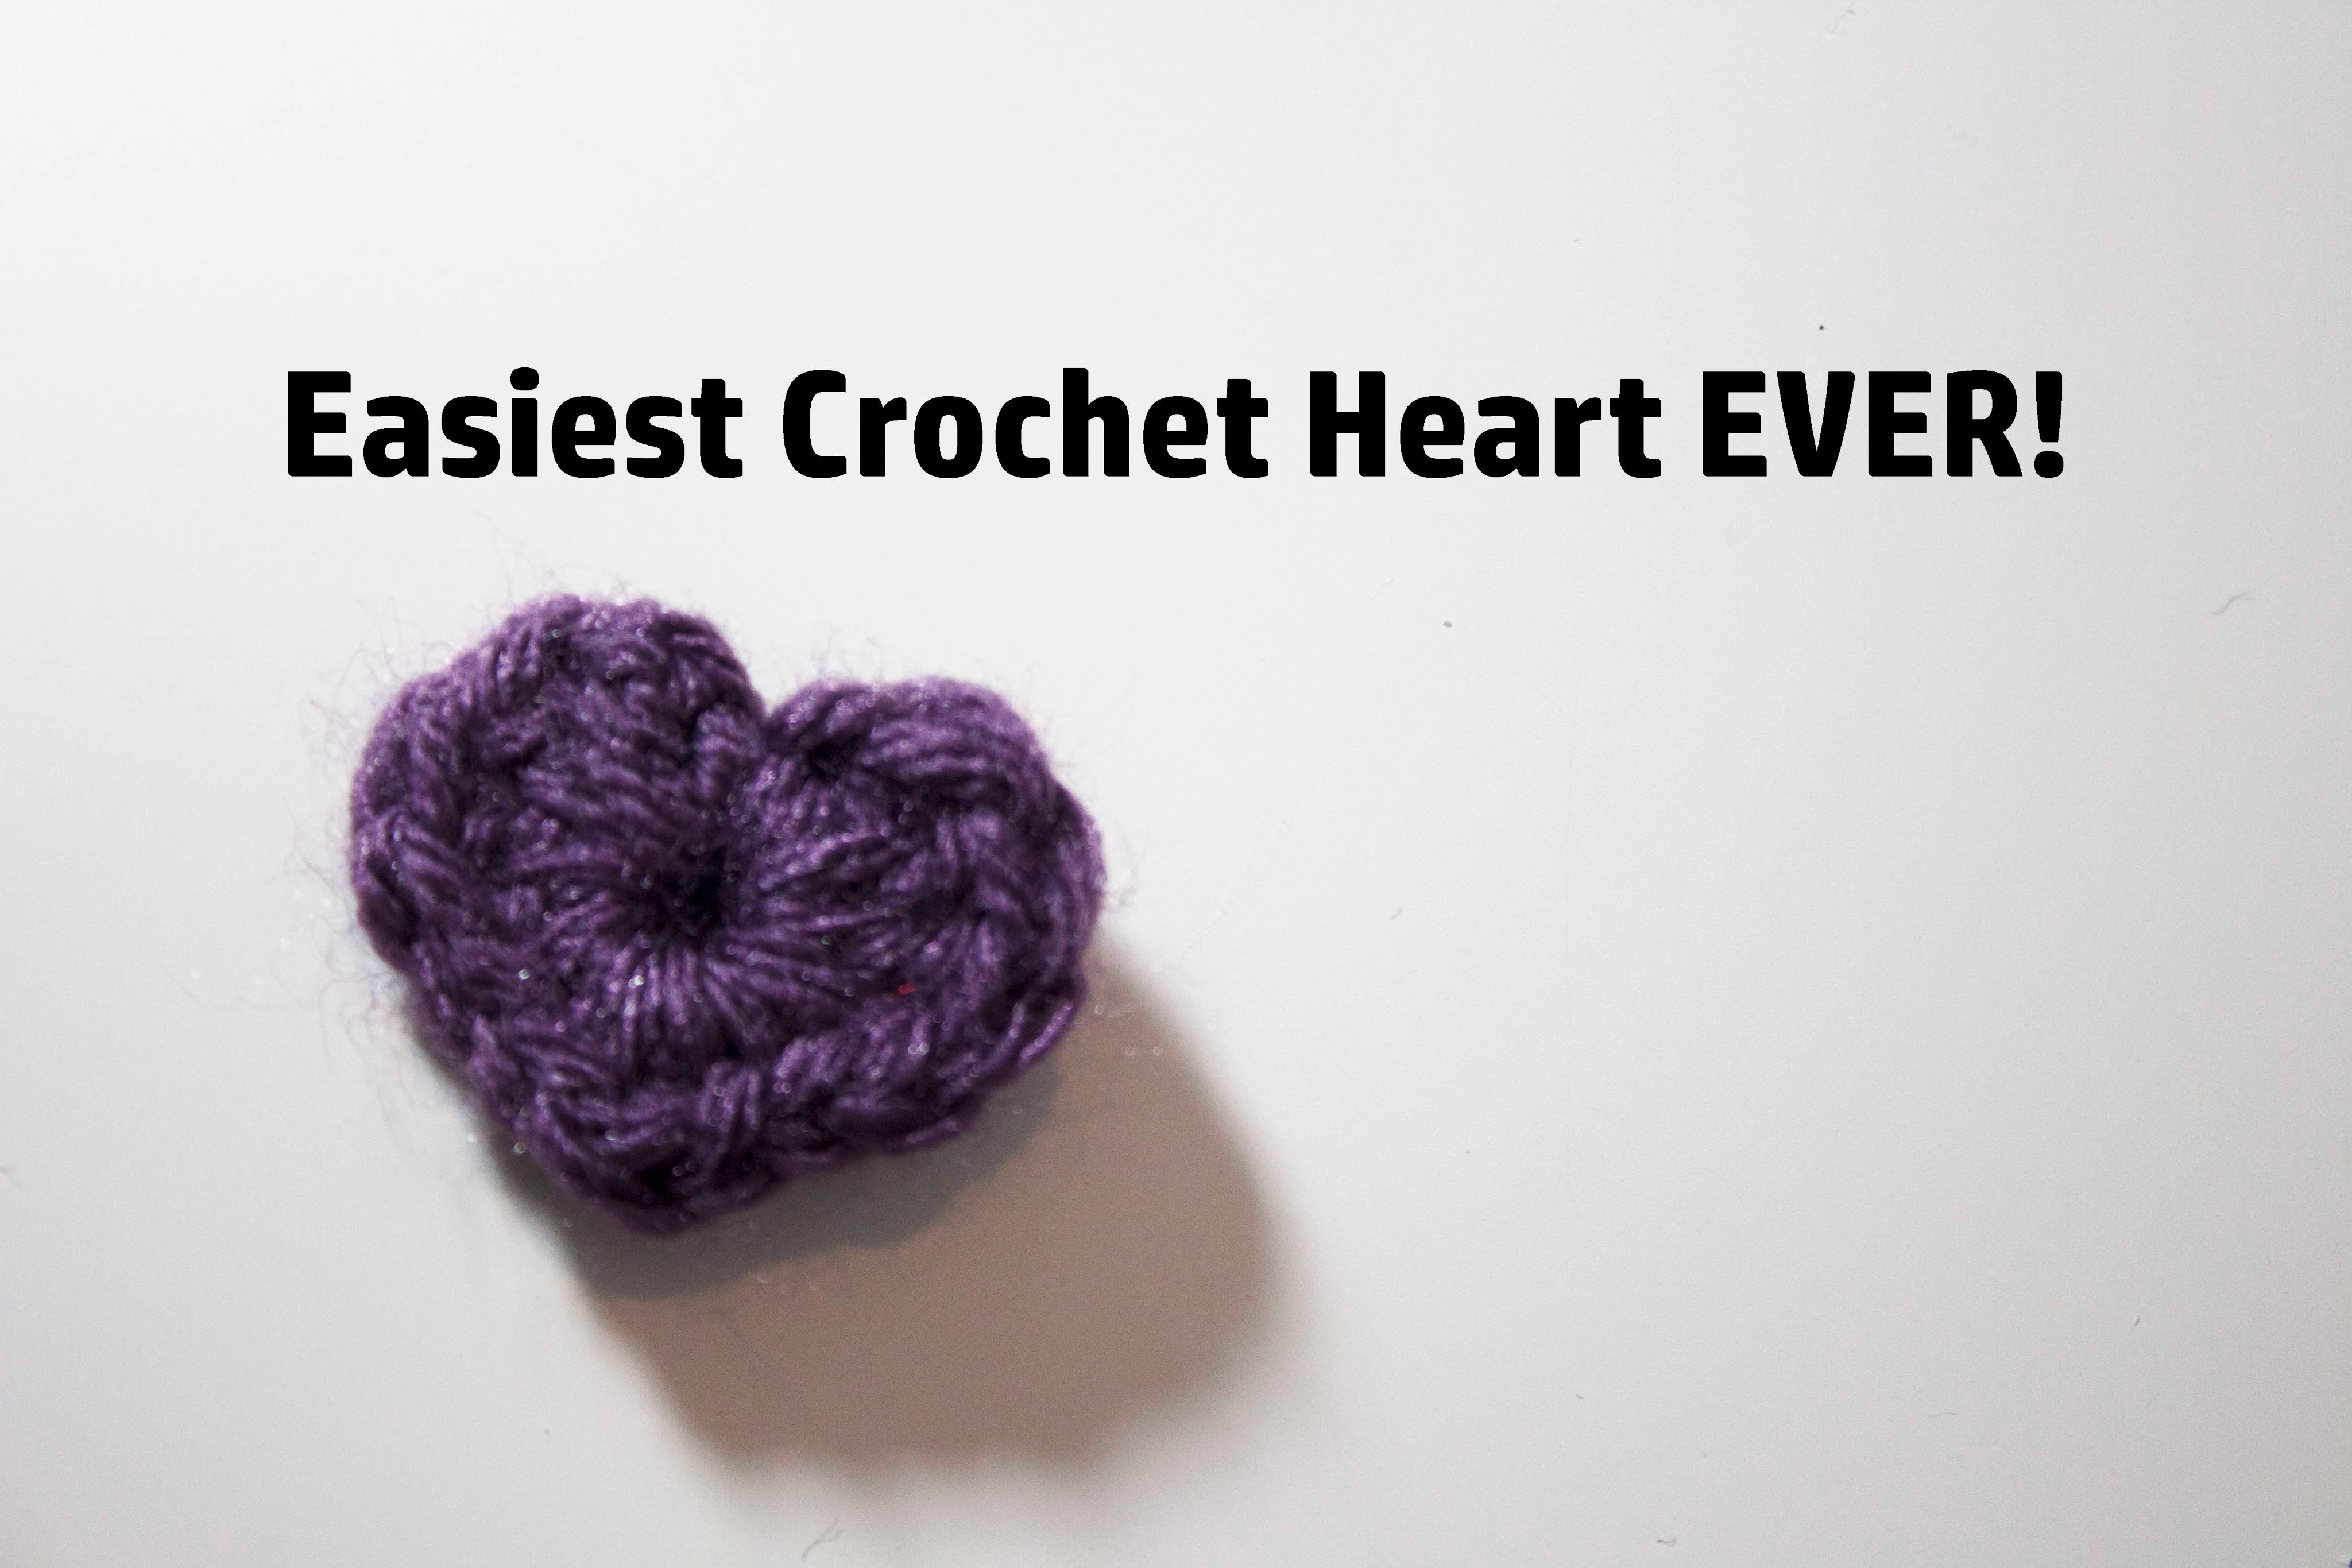 Easiest Quickest Crochet heart IN THE WHOLE ENTIRE WORLD!!!